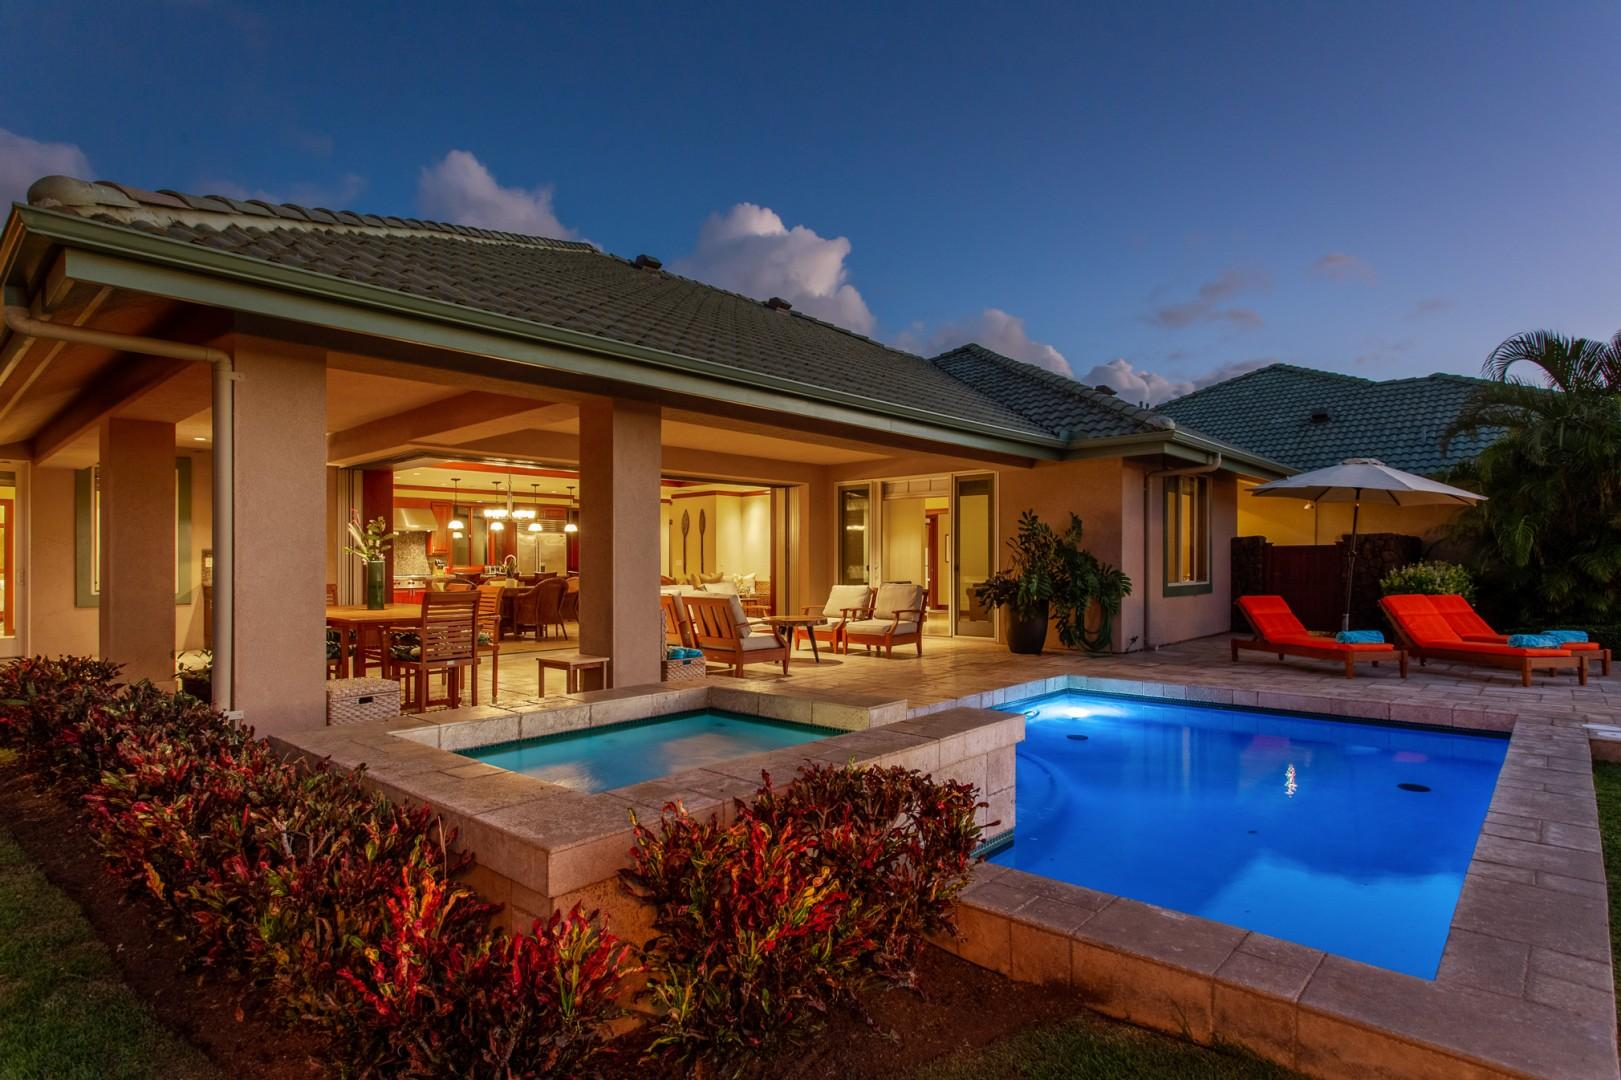 Alternate view of home at twilight showcasing the indoor-outdoor living.